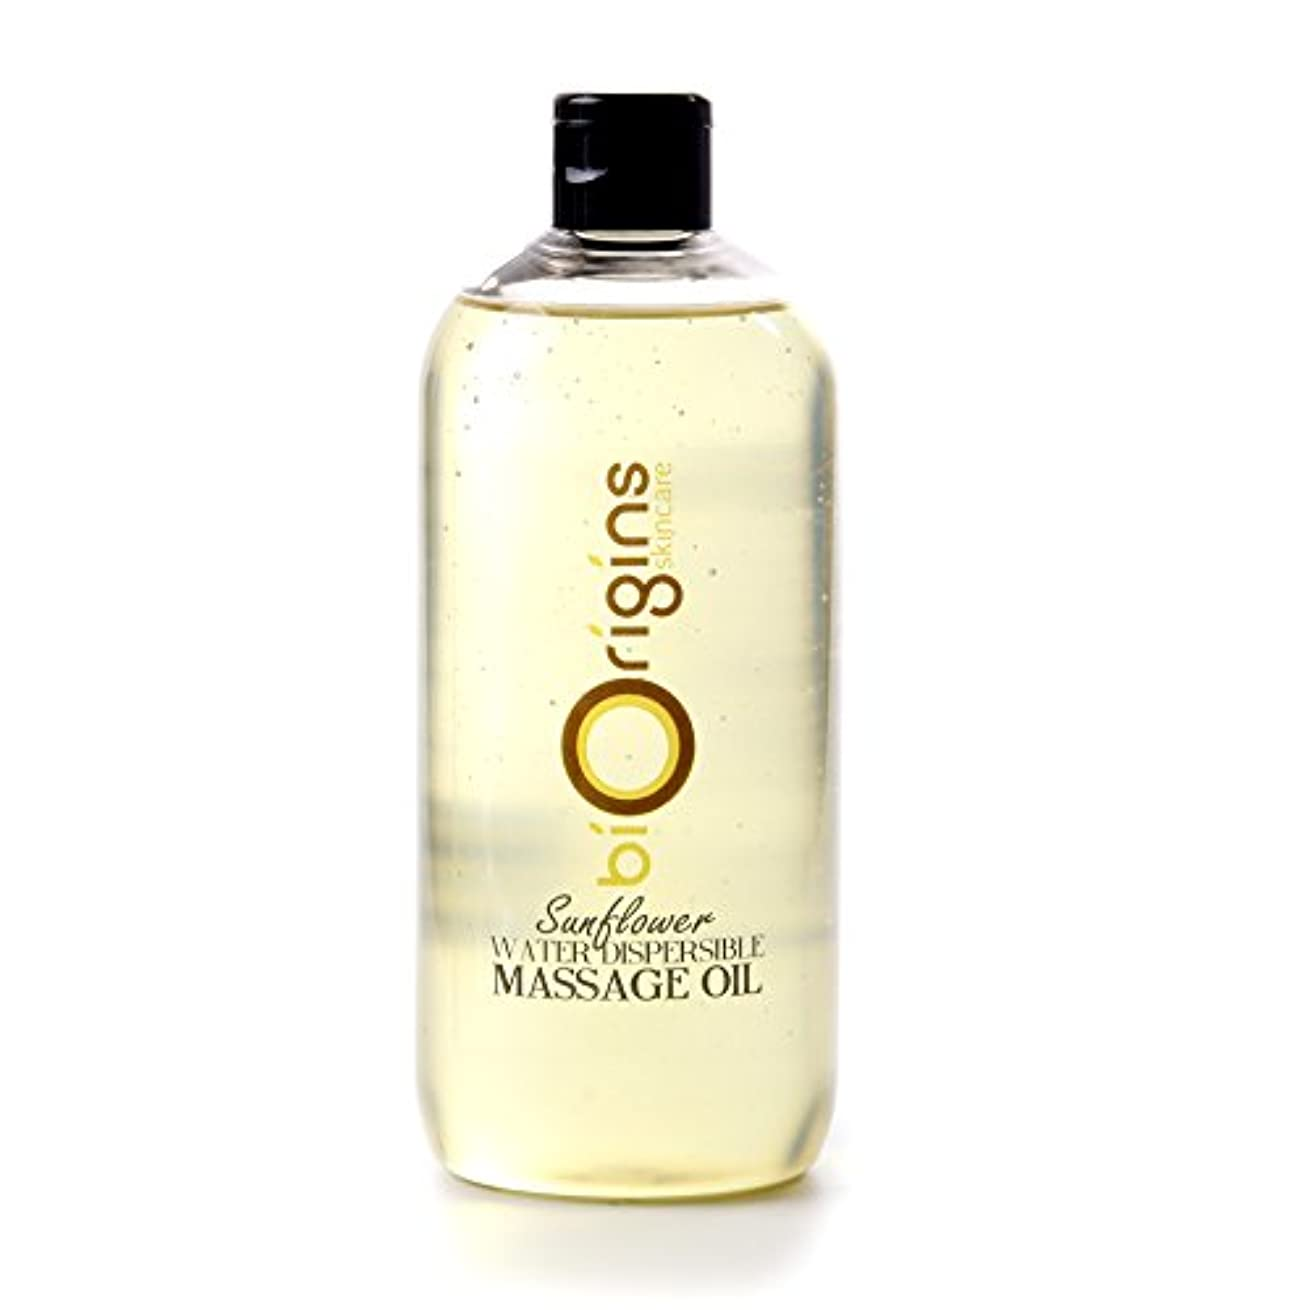 自動敵対的お酒Sunflower Water Dispersible Massage Oil - 500ml - 100% Pure